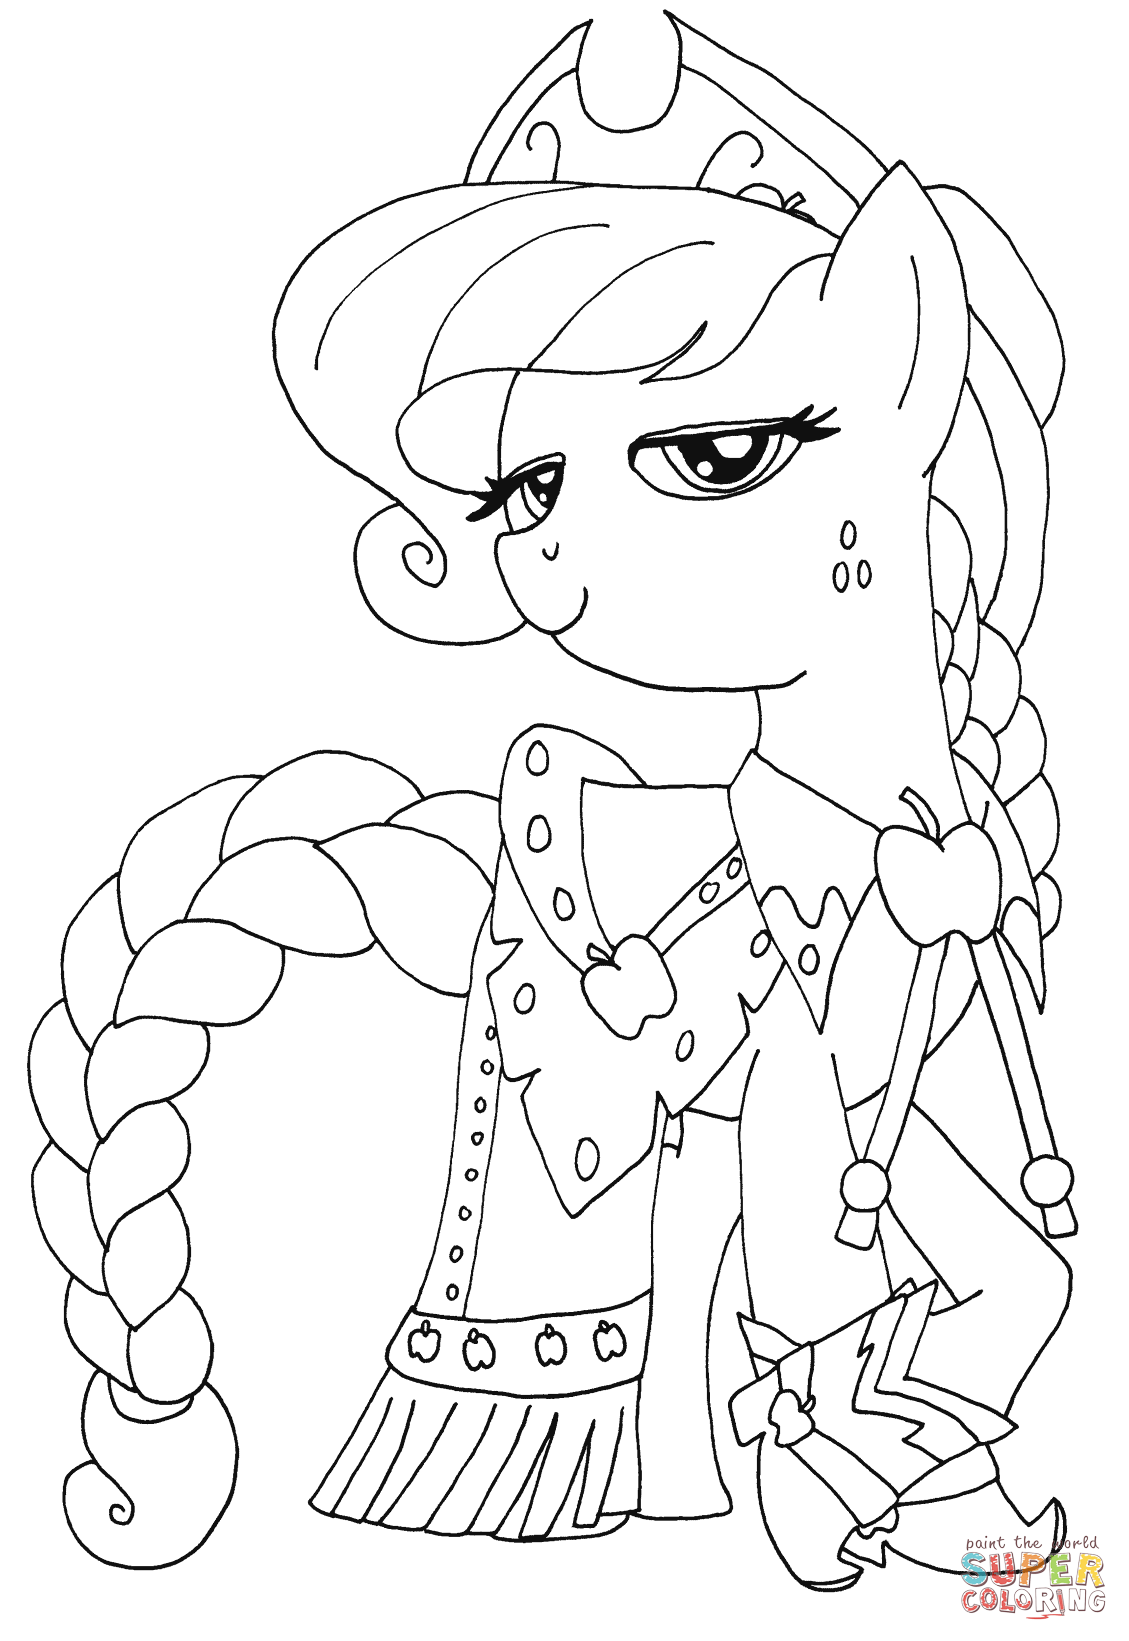 Ausmalbilder Kostenlos Drucken My Little Pony : My Little Pony Coloring Pages Pony Coloring Pages Mlp Coloring Pages